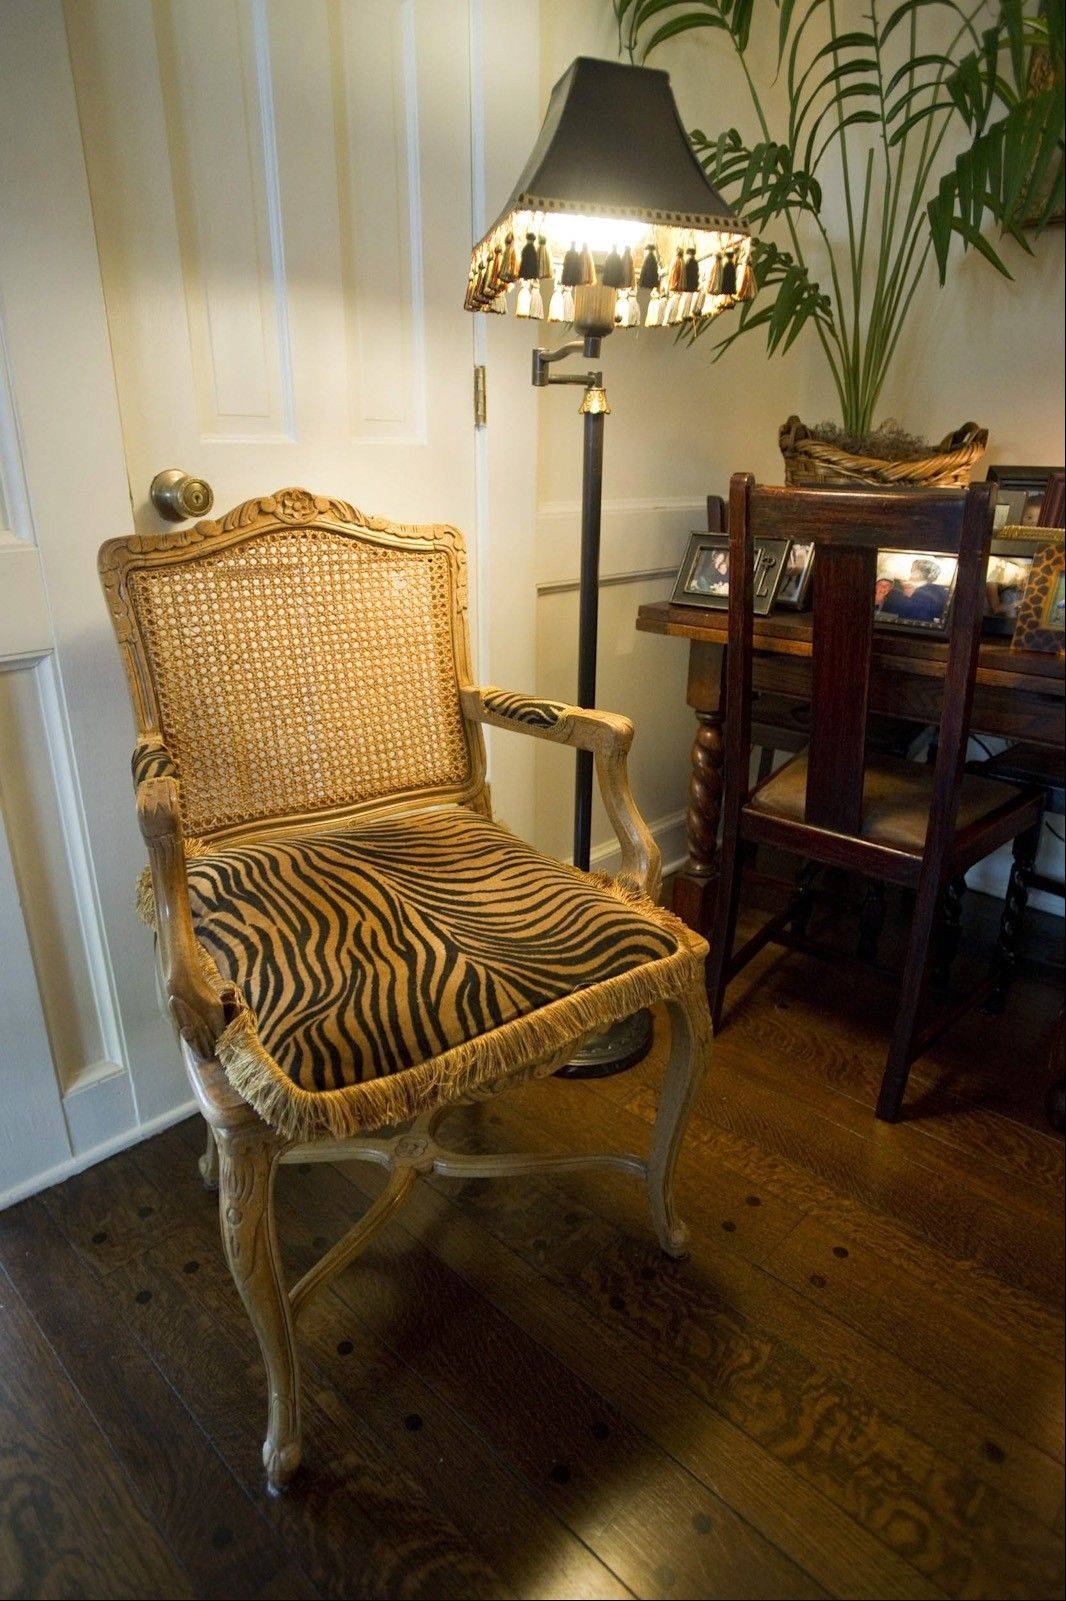 Kaye McWhorter applied animal print accents to this chair she found on the side of the road.